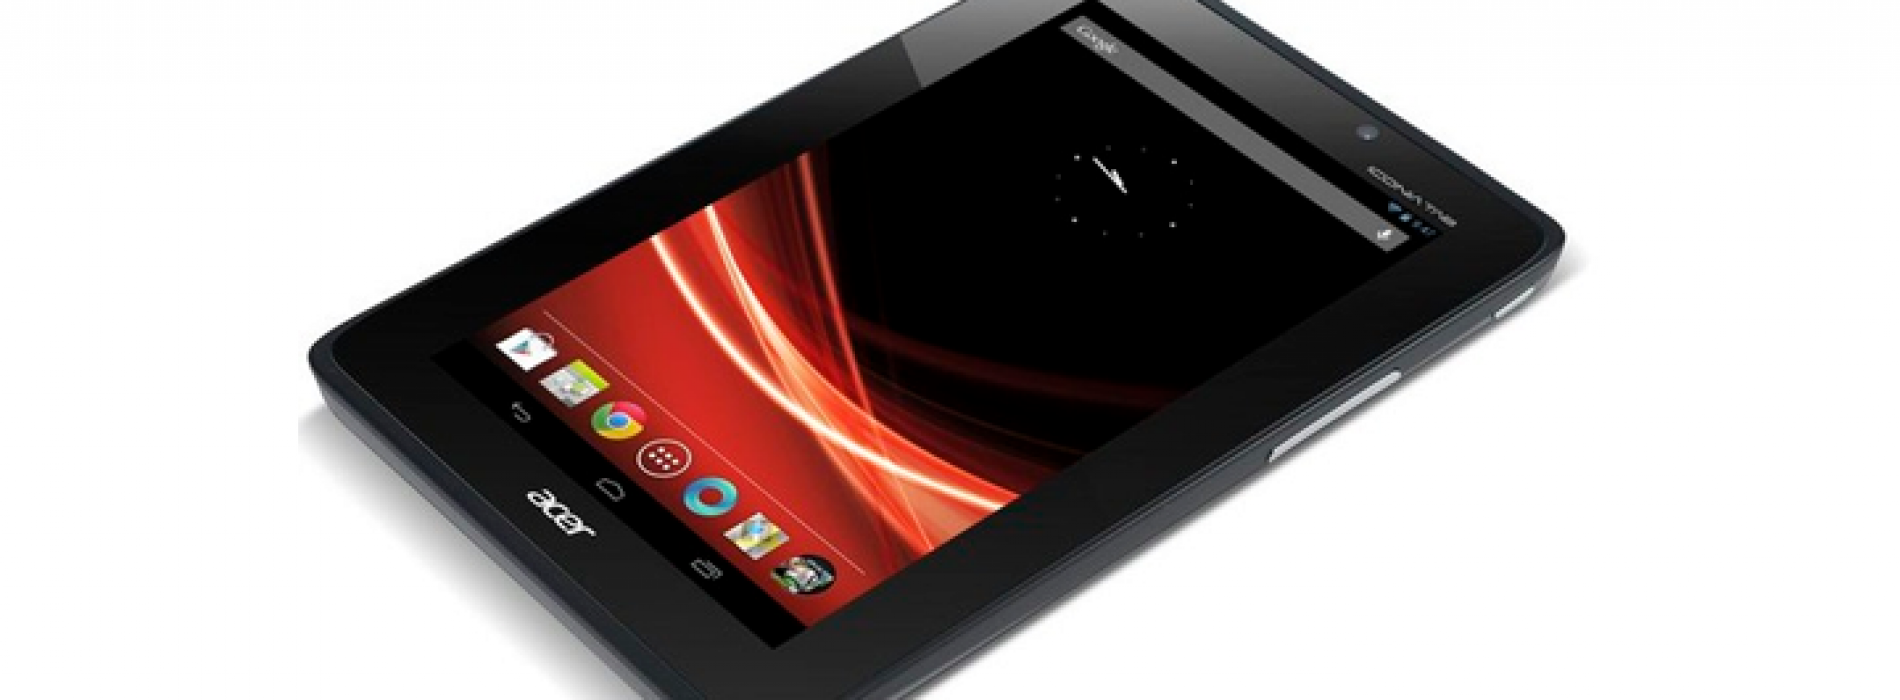 Acer introduces 7-inch Iconia Tab A110